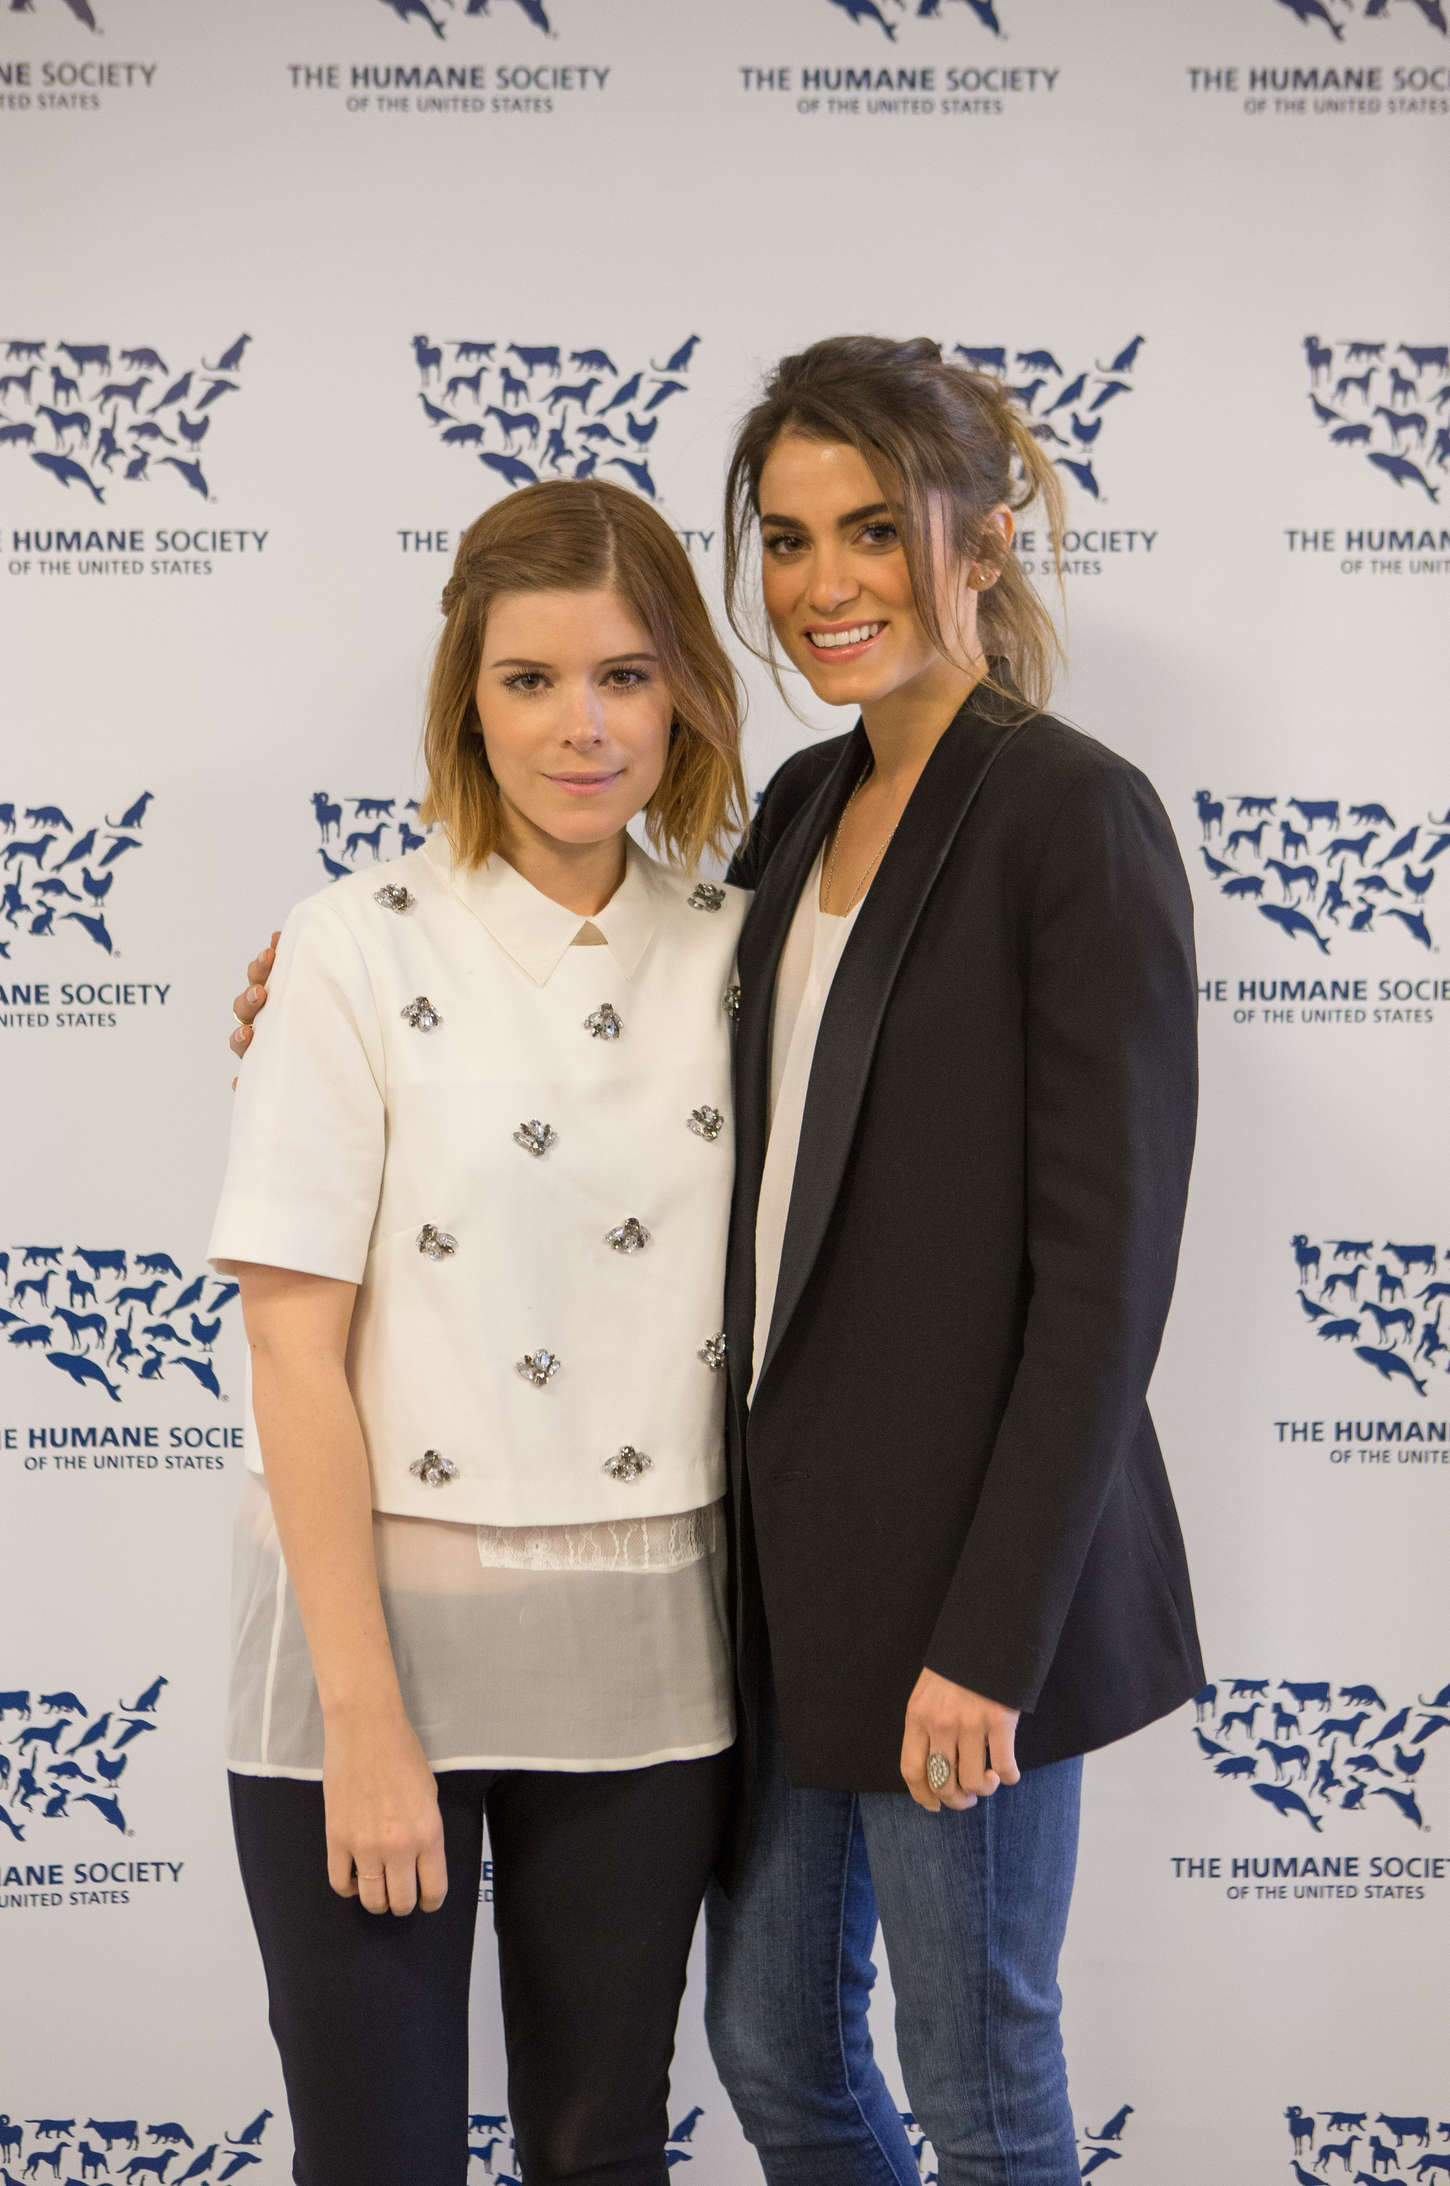 Nikki Reed - Humane Society of the United States in Los Angeles